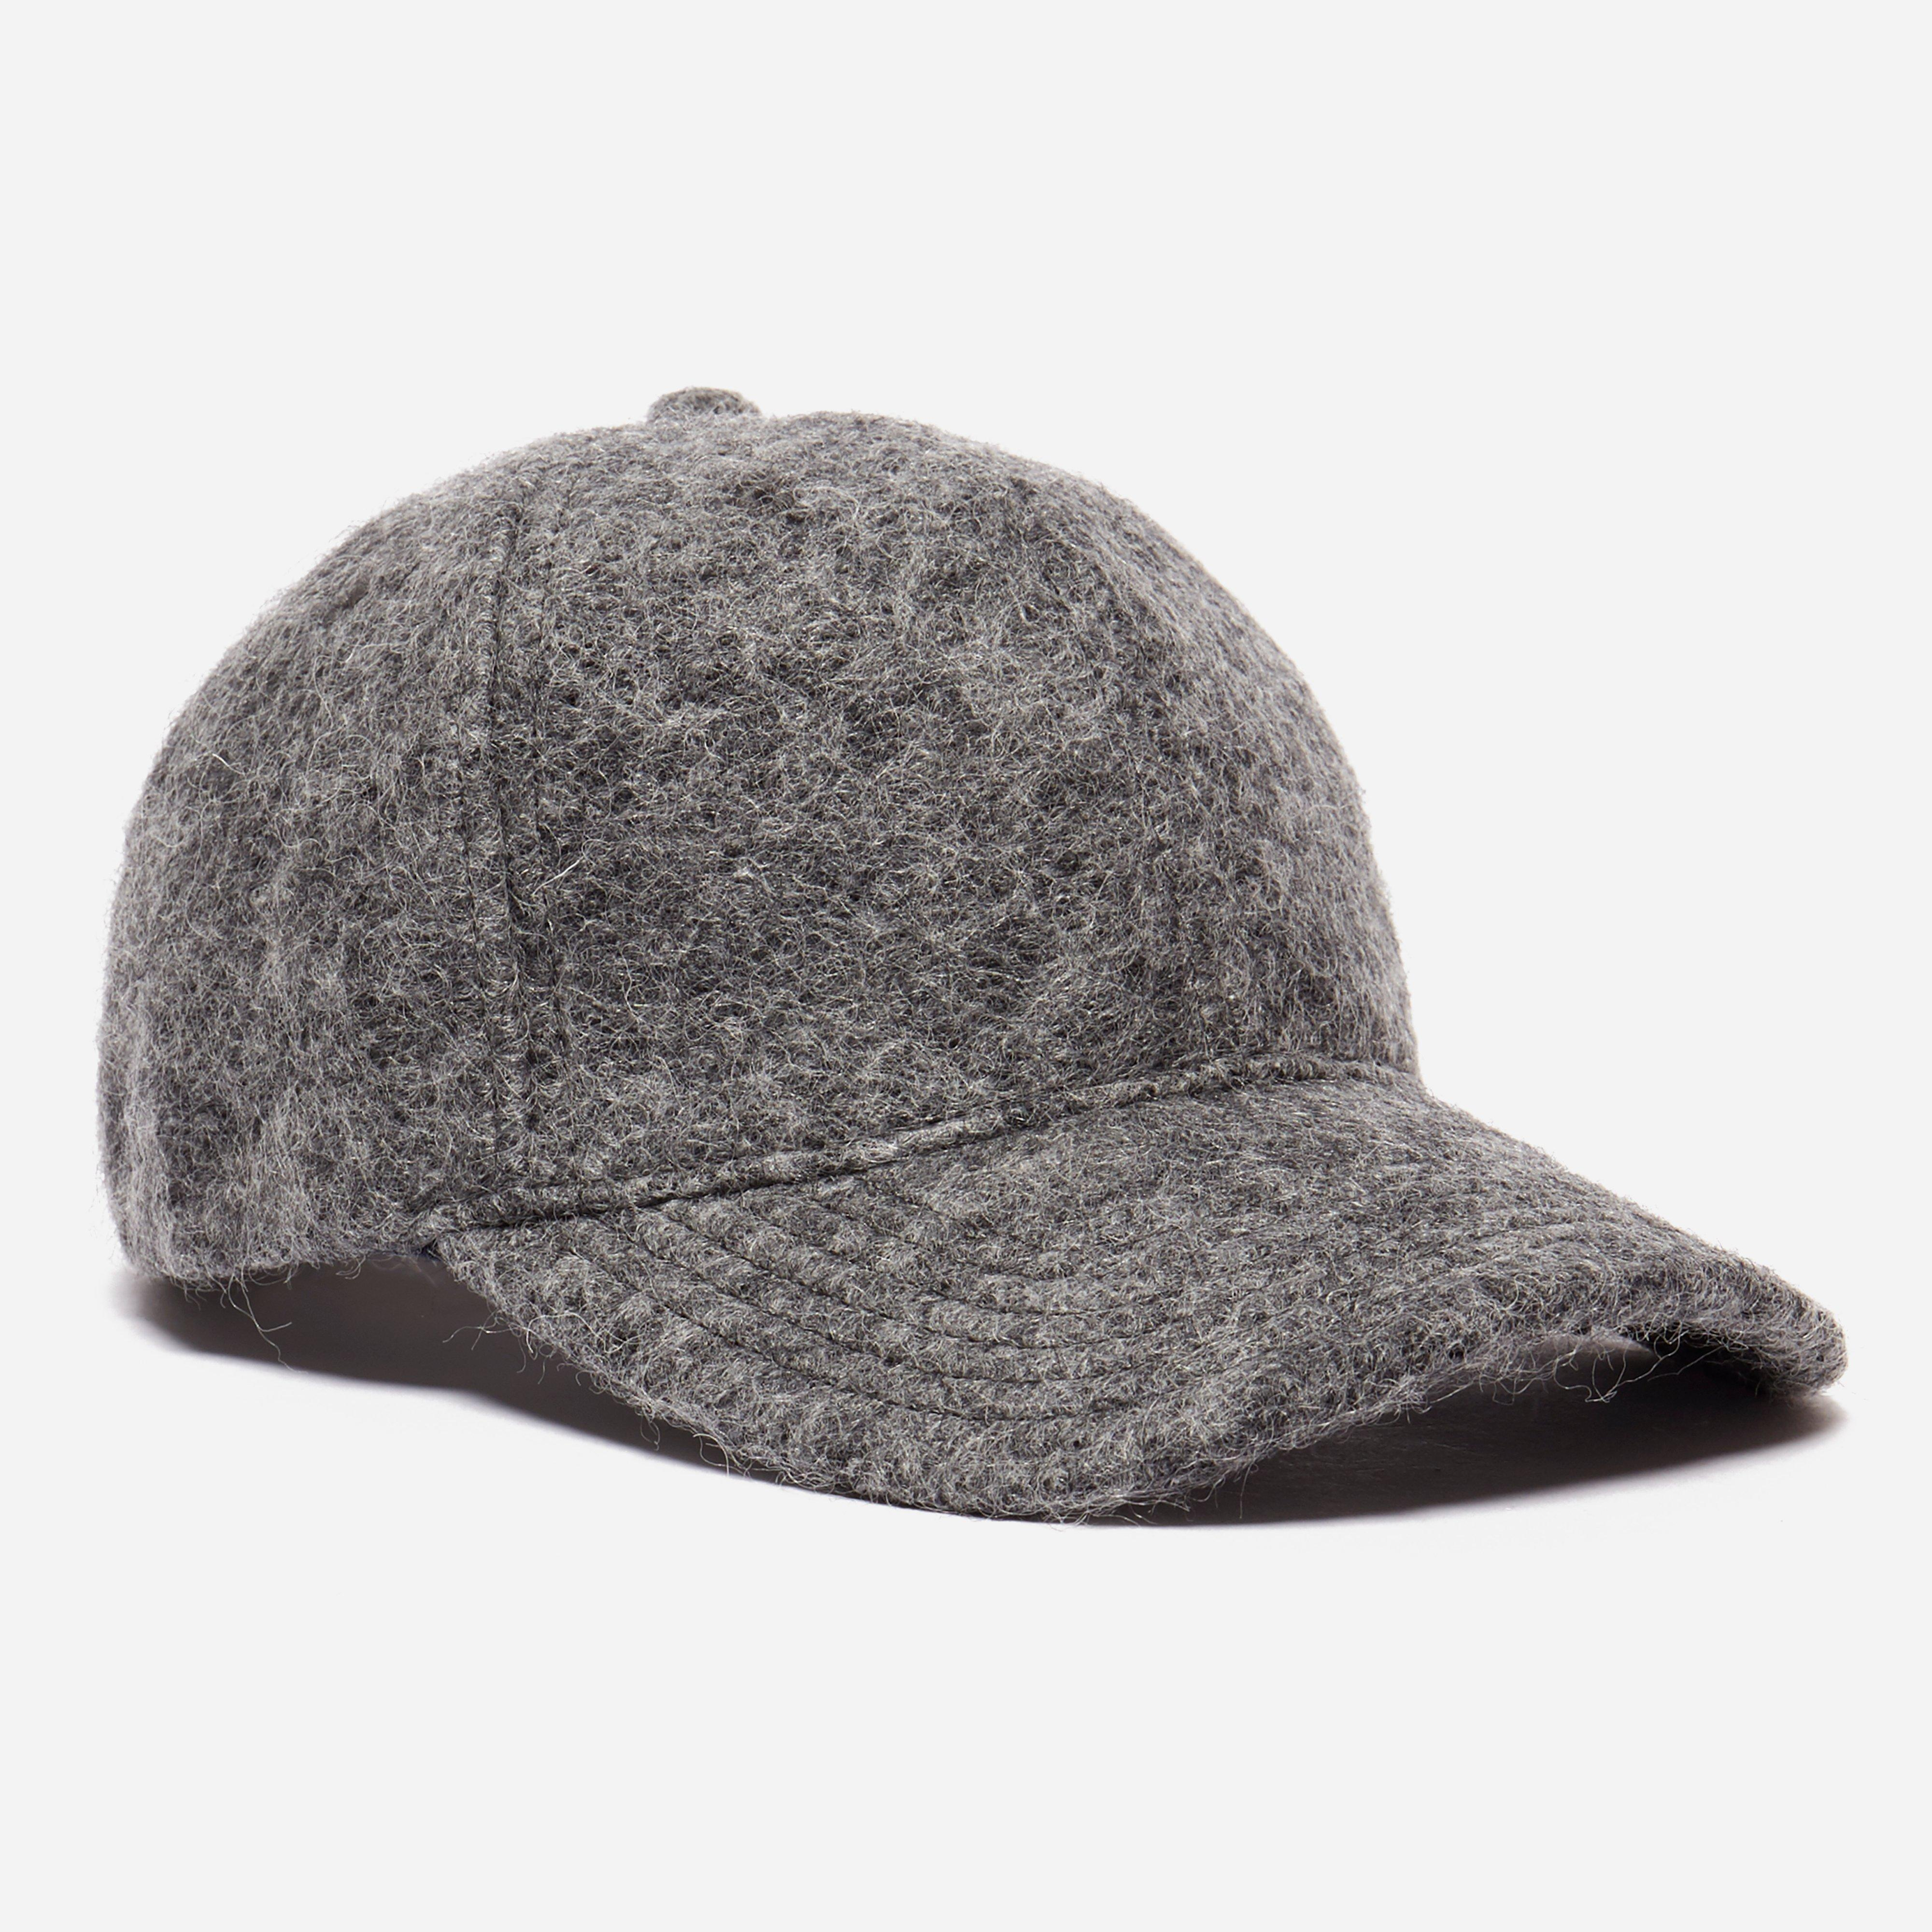 45303882a7e Lyst - NN07 Baseball Cap in Gray for Men